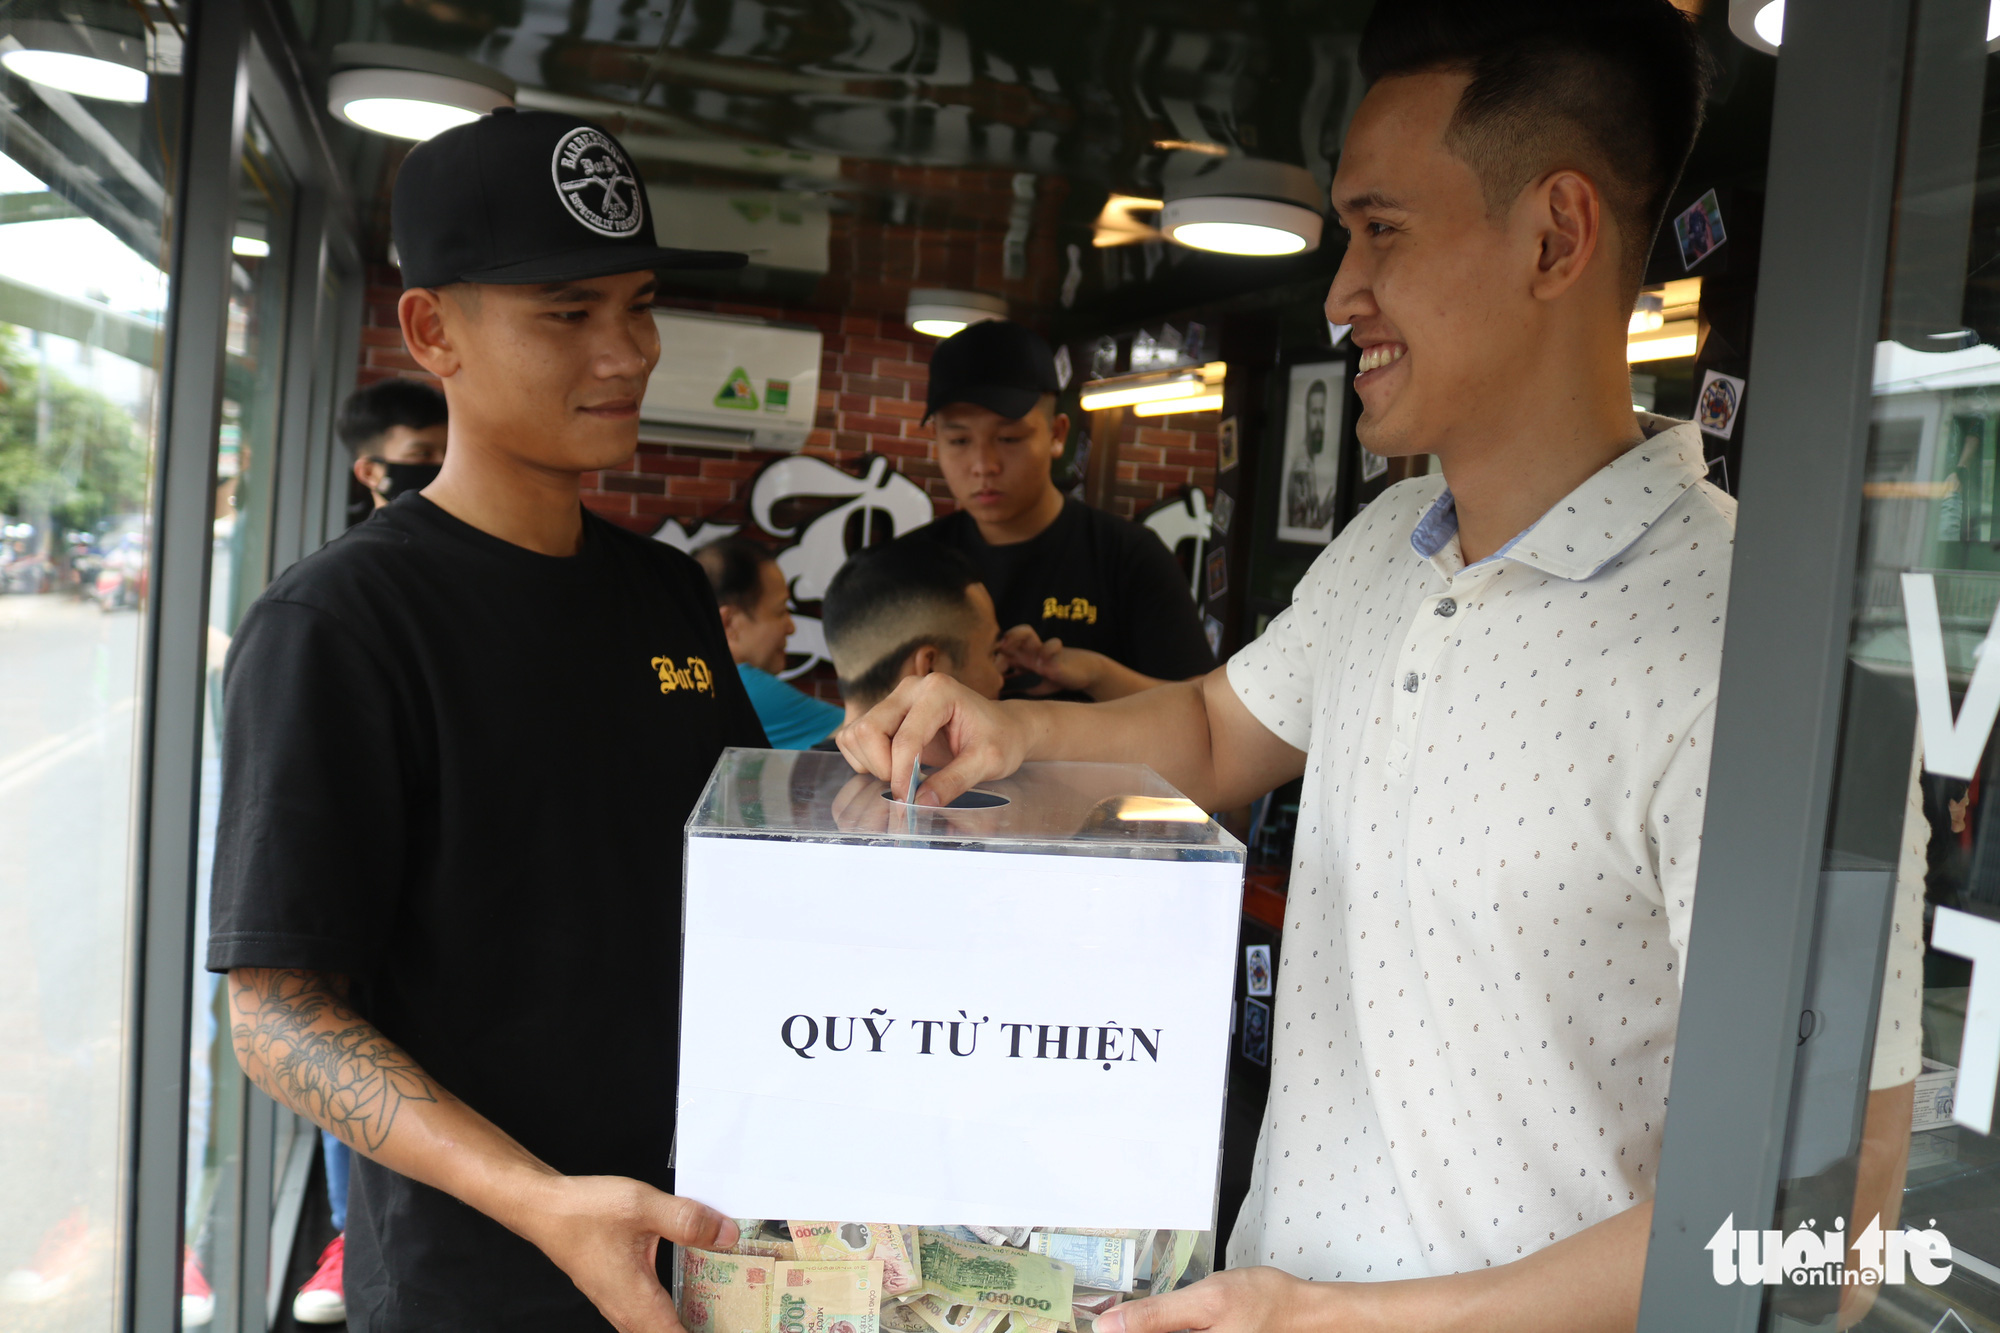 <em>Nguyen Minh Phuc (right), a 24-year-old resident in District 12, Ho Chi Minh City, makes a donation after getting a free haircut at a Vietnamese mobile barbershop backed by charitable purposes. Photo: </em>Ngoc Phuong / Tuoi Tre